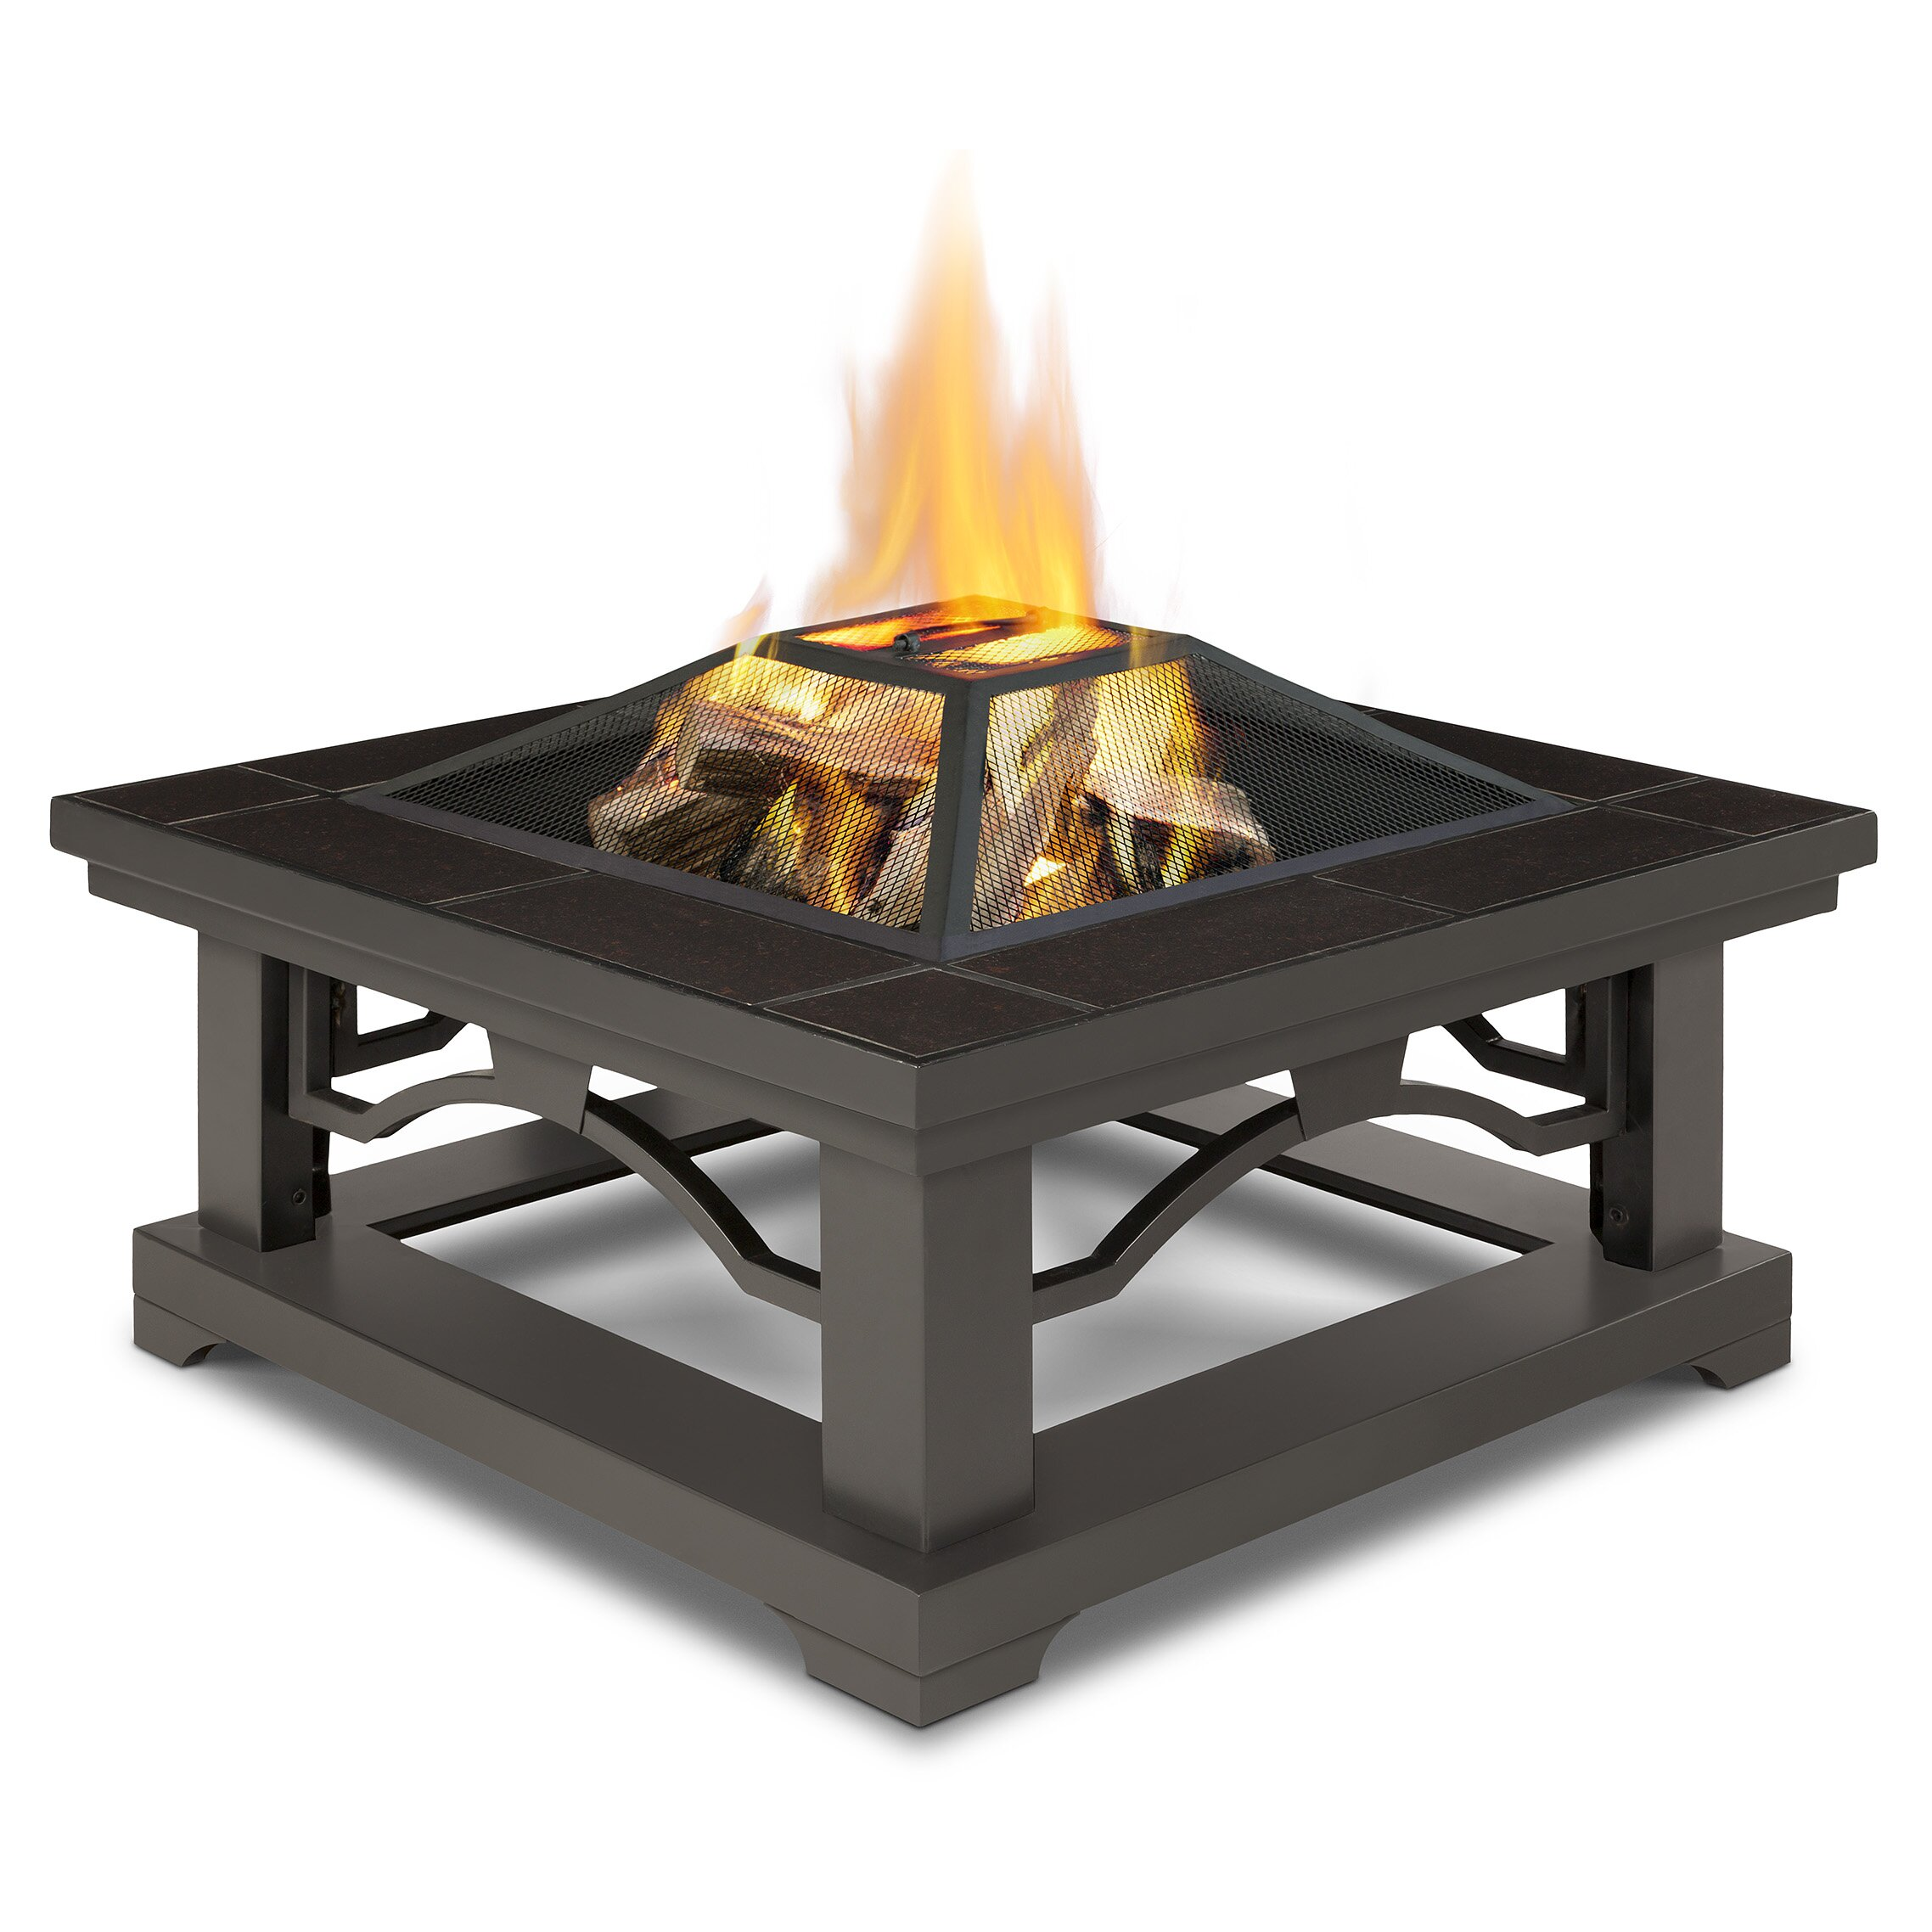 Real Flame Crestone Wood Burning Fire Pit Reviews Wayfair